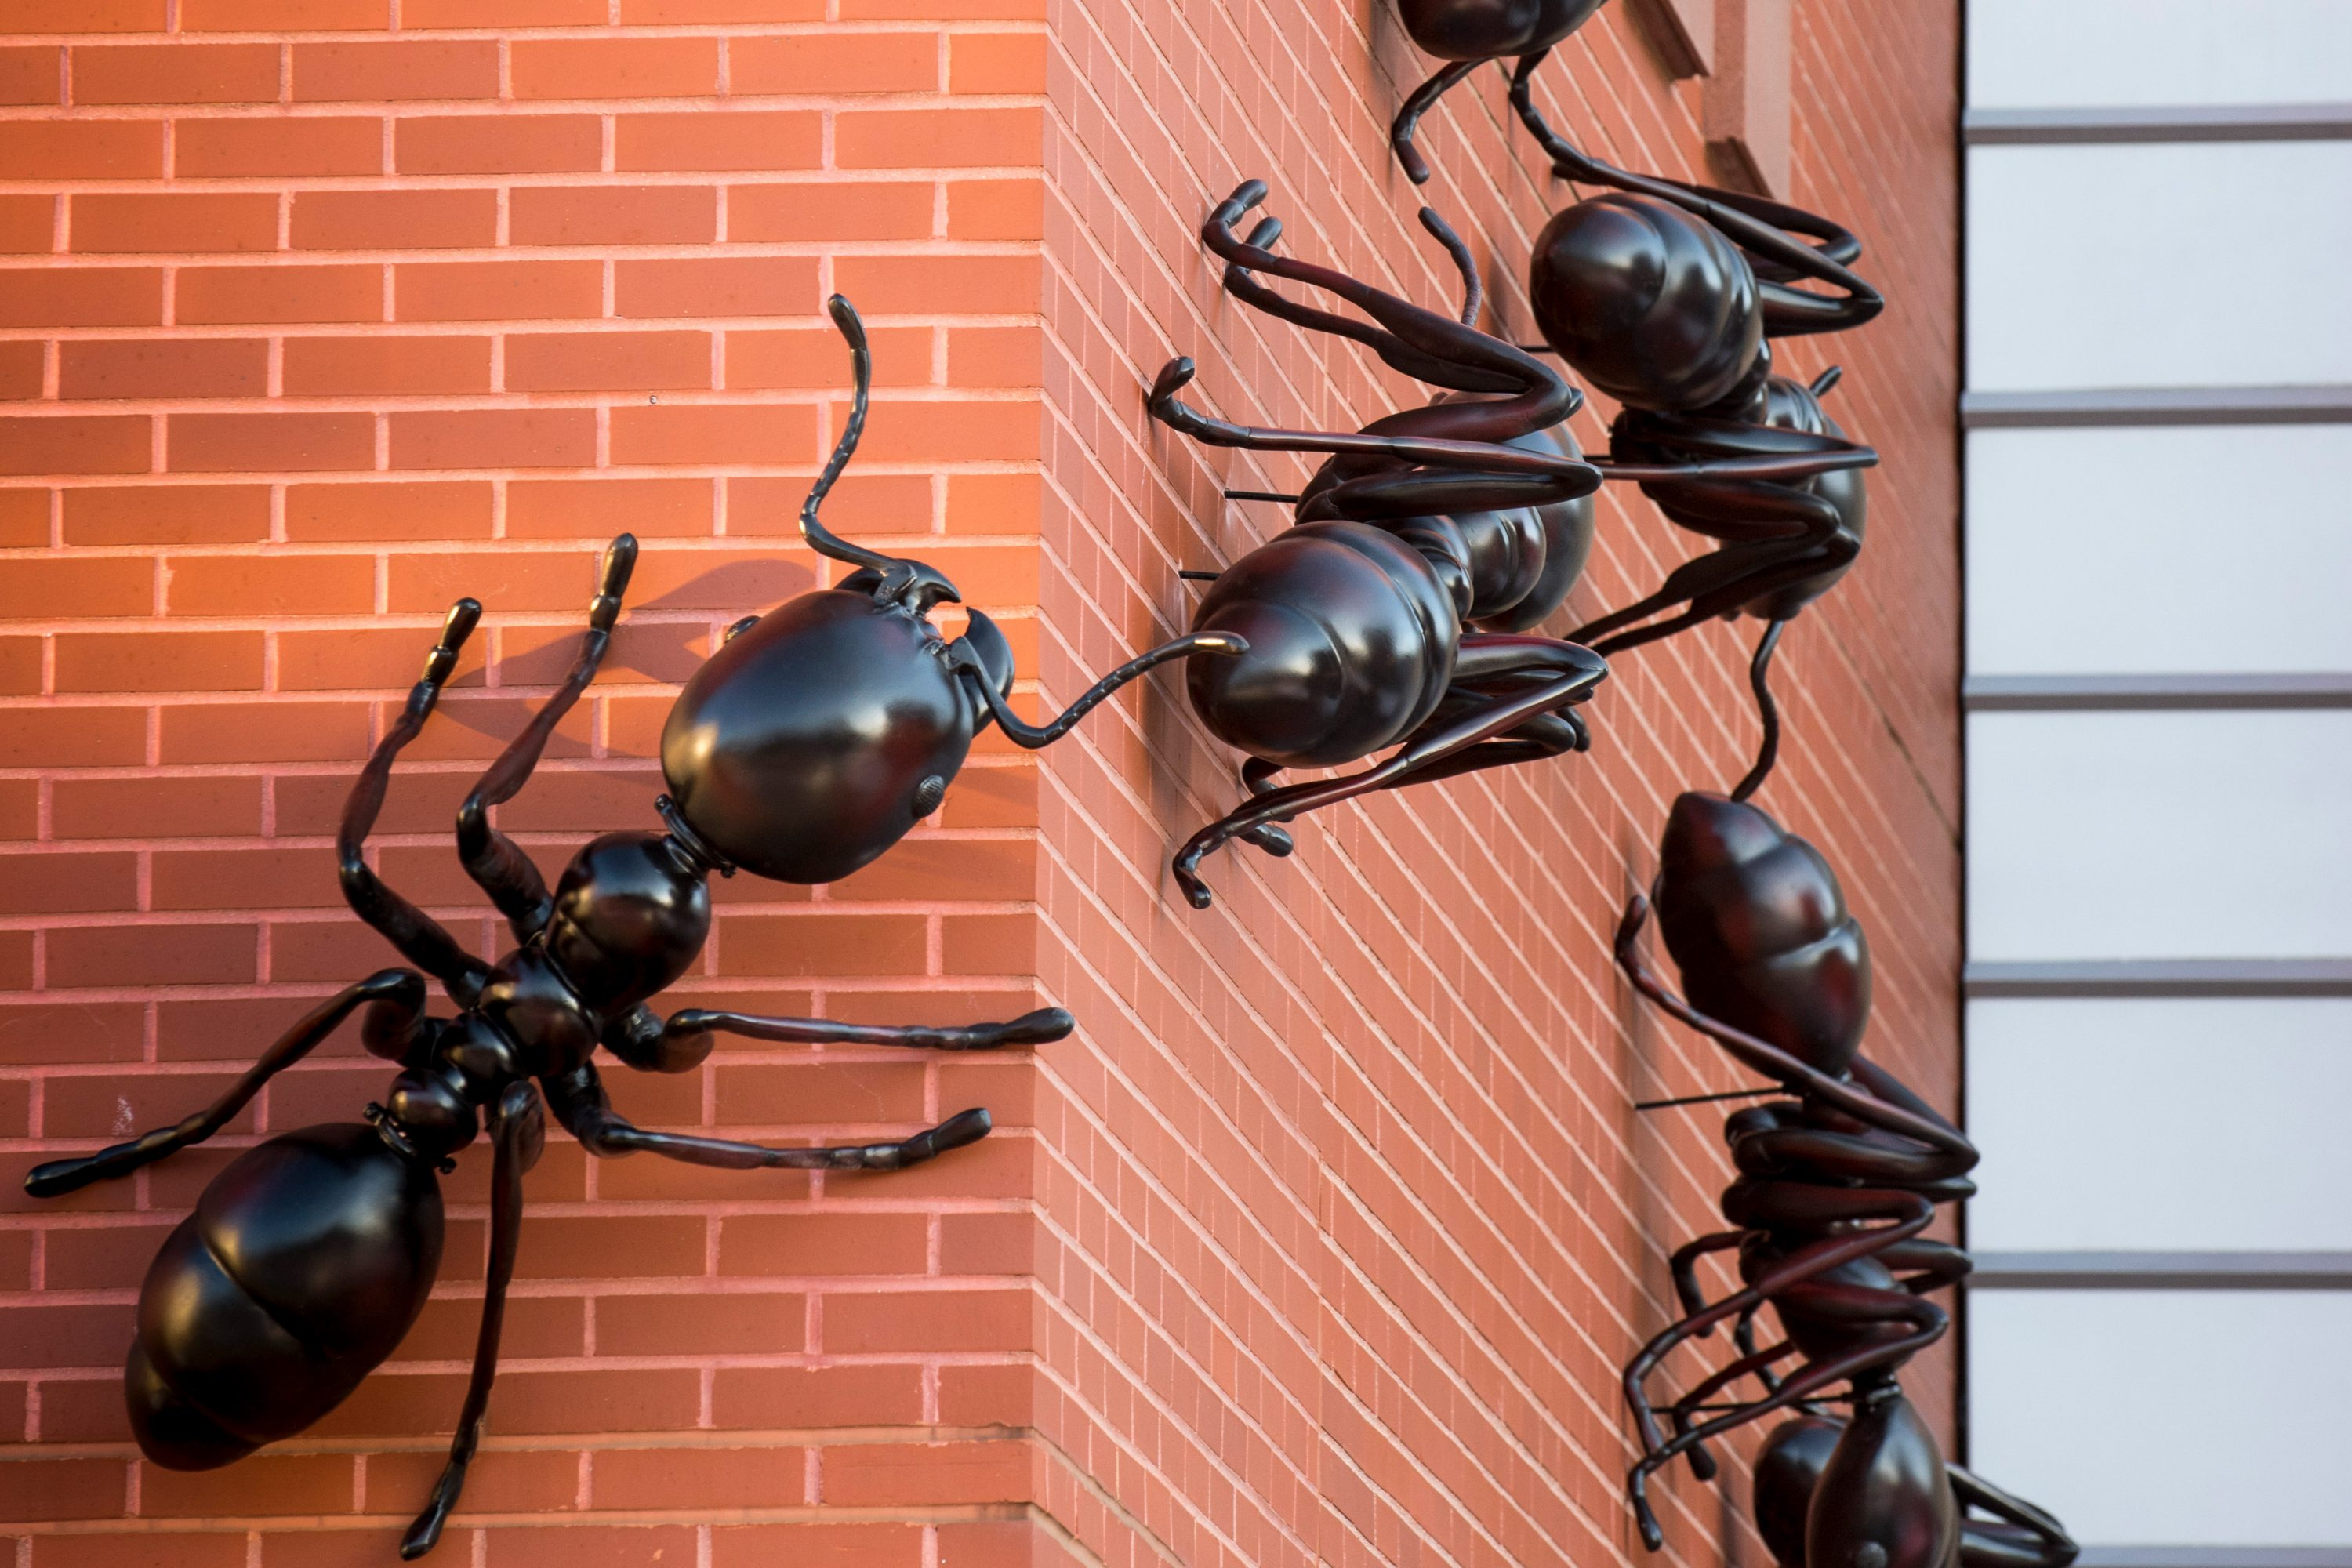 Army Ants March into New Exhibition